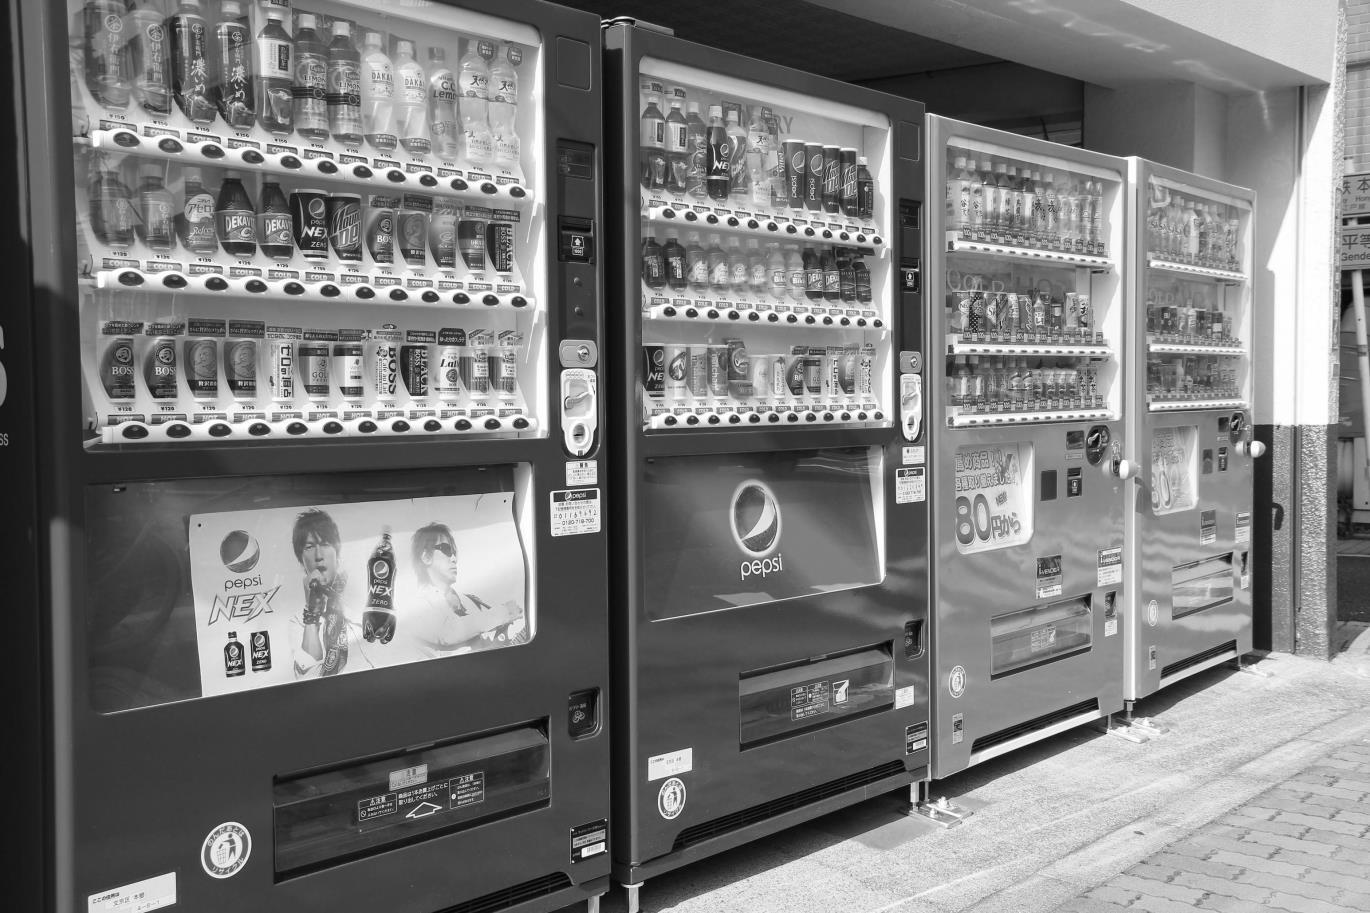 Vending machines.